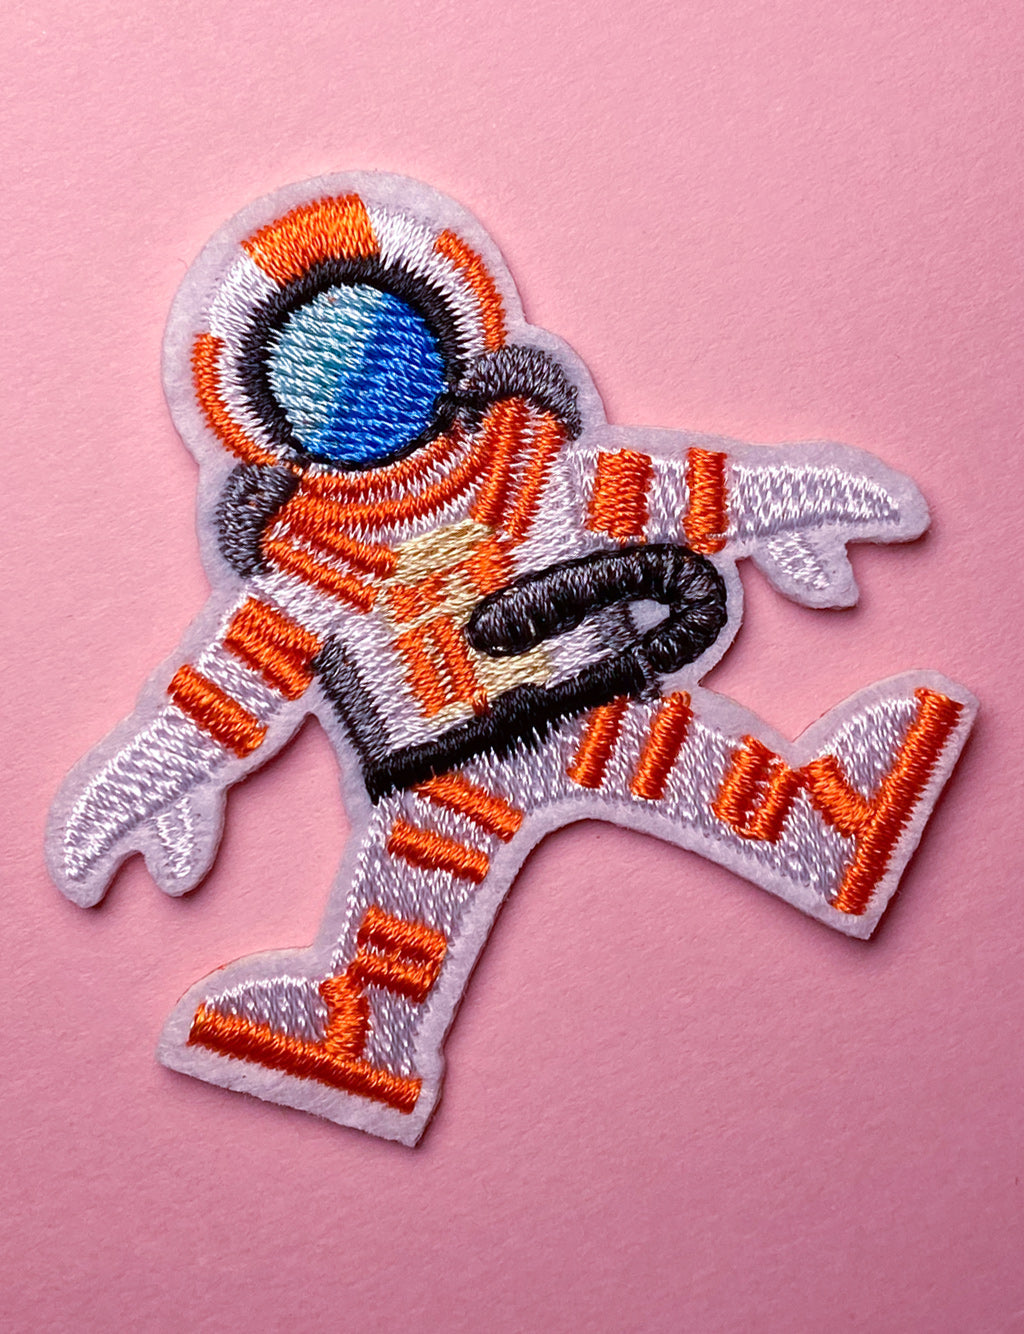 MINI SPACE MAN PATCH